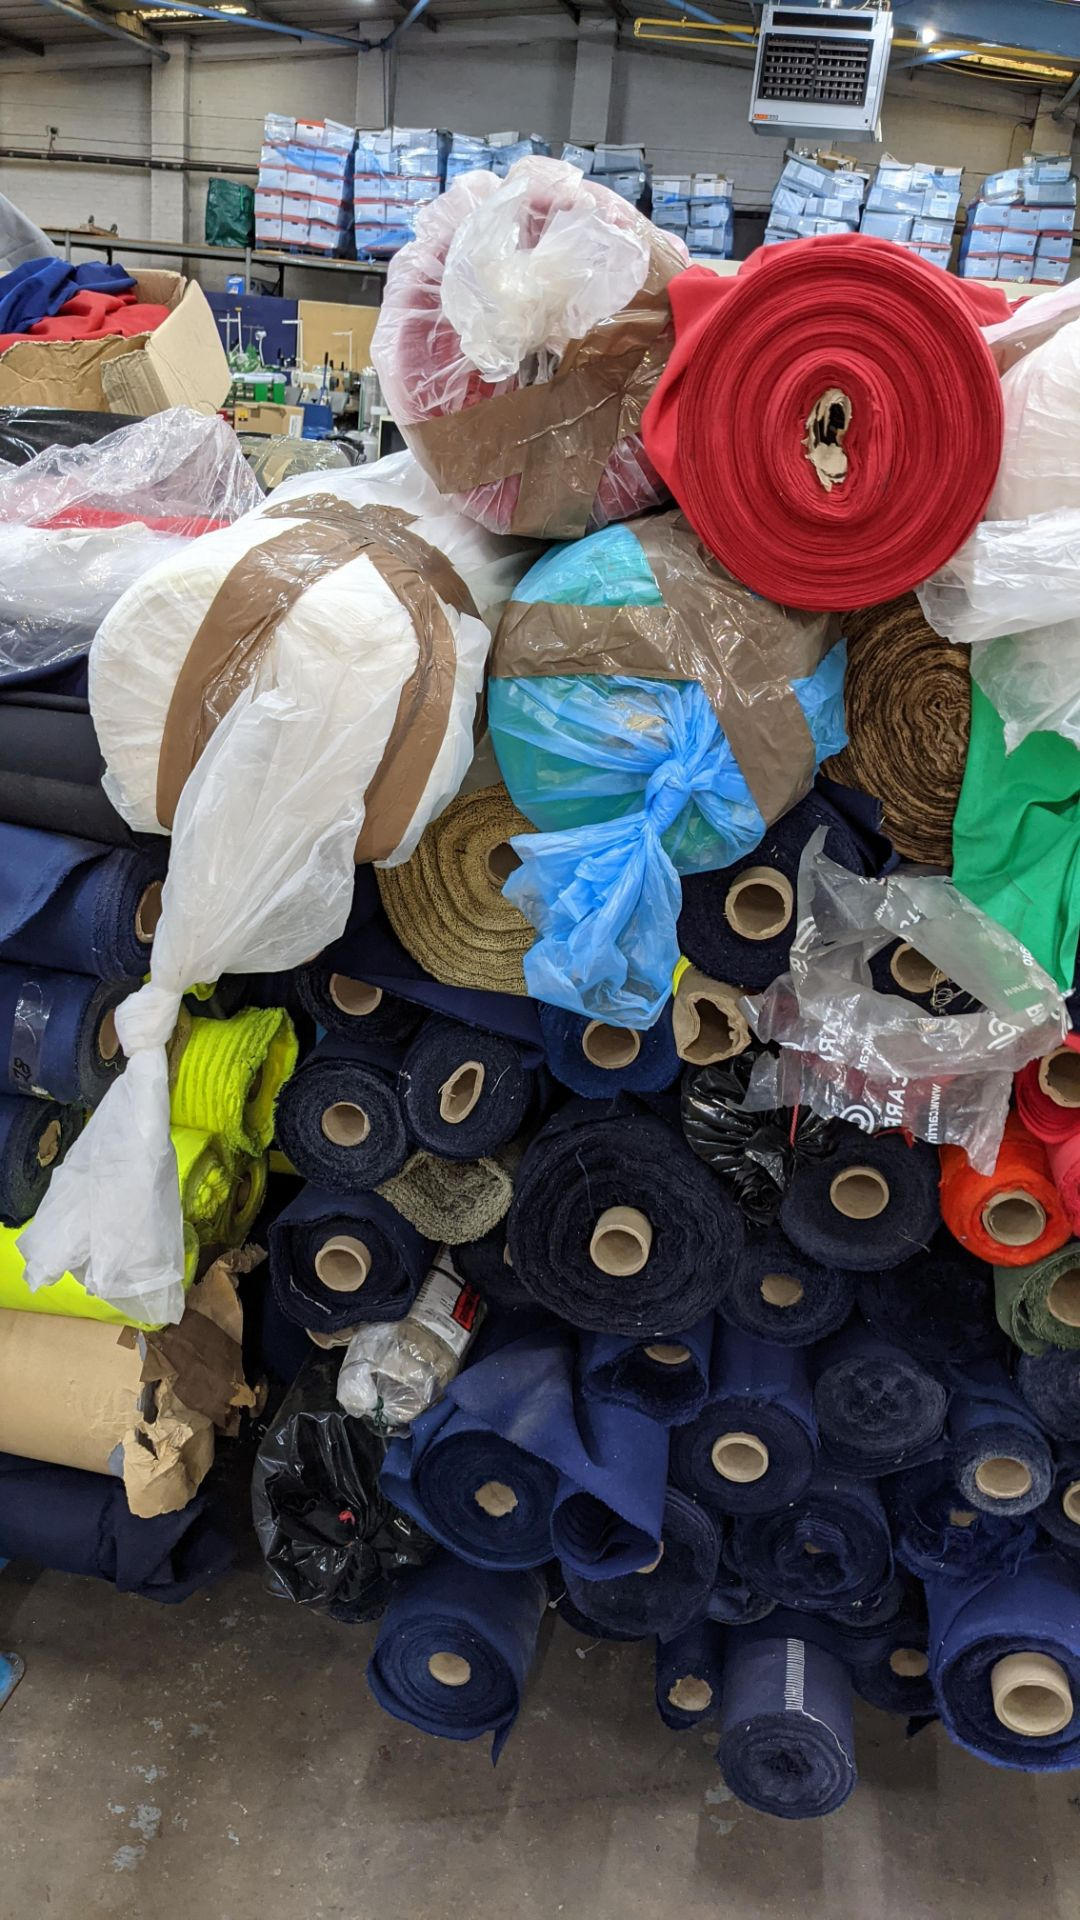 The contents of a large stillage of fabric. Please note the stillage is excluded and cannot be remo - Image 7 of 8